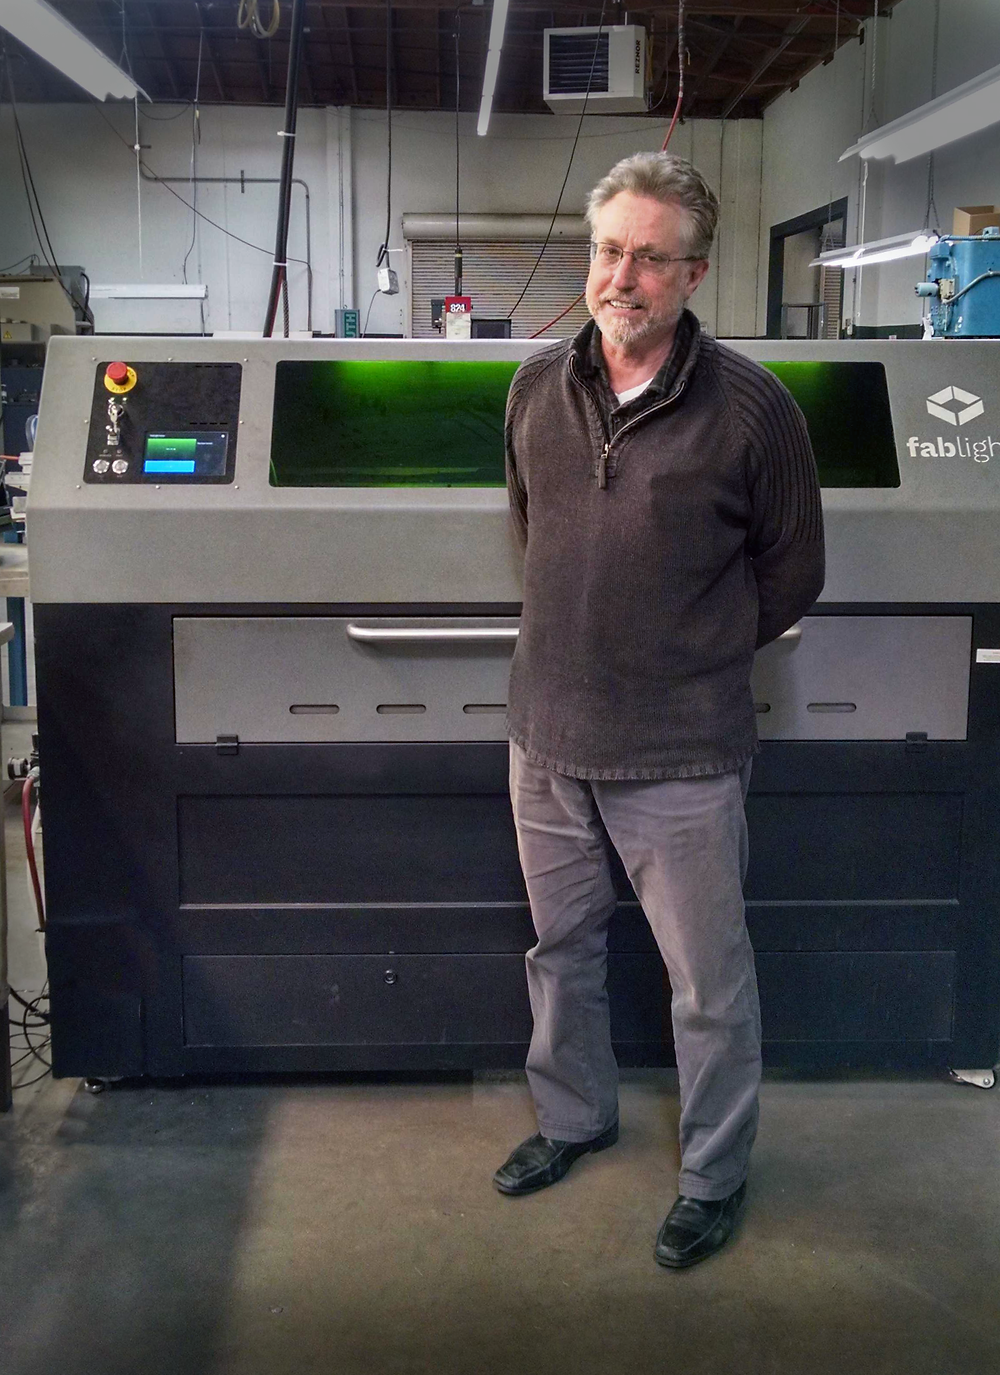 Dan Morgan standing next to the FabLight machine at Scandic Springs